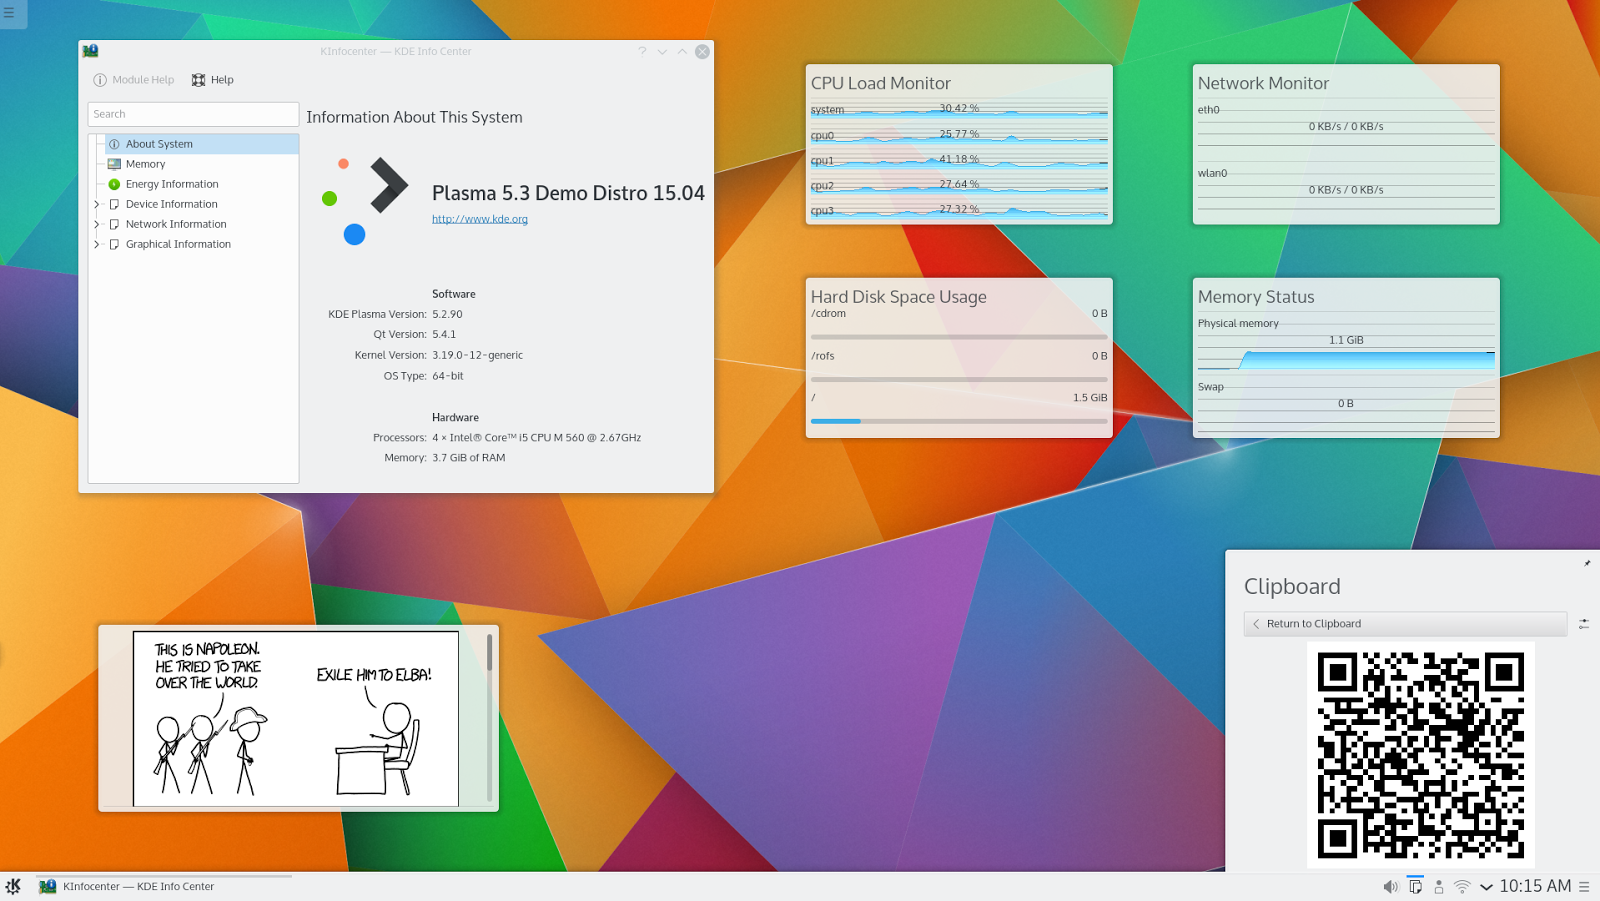 Linux tutorial terminal online installupdate kde plasma 531 on kde plasma formerly k desktop environment and kde software compilation and kde plasma workspace and applications is an open source project comprised of baditri Choice Image